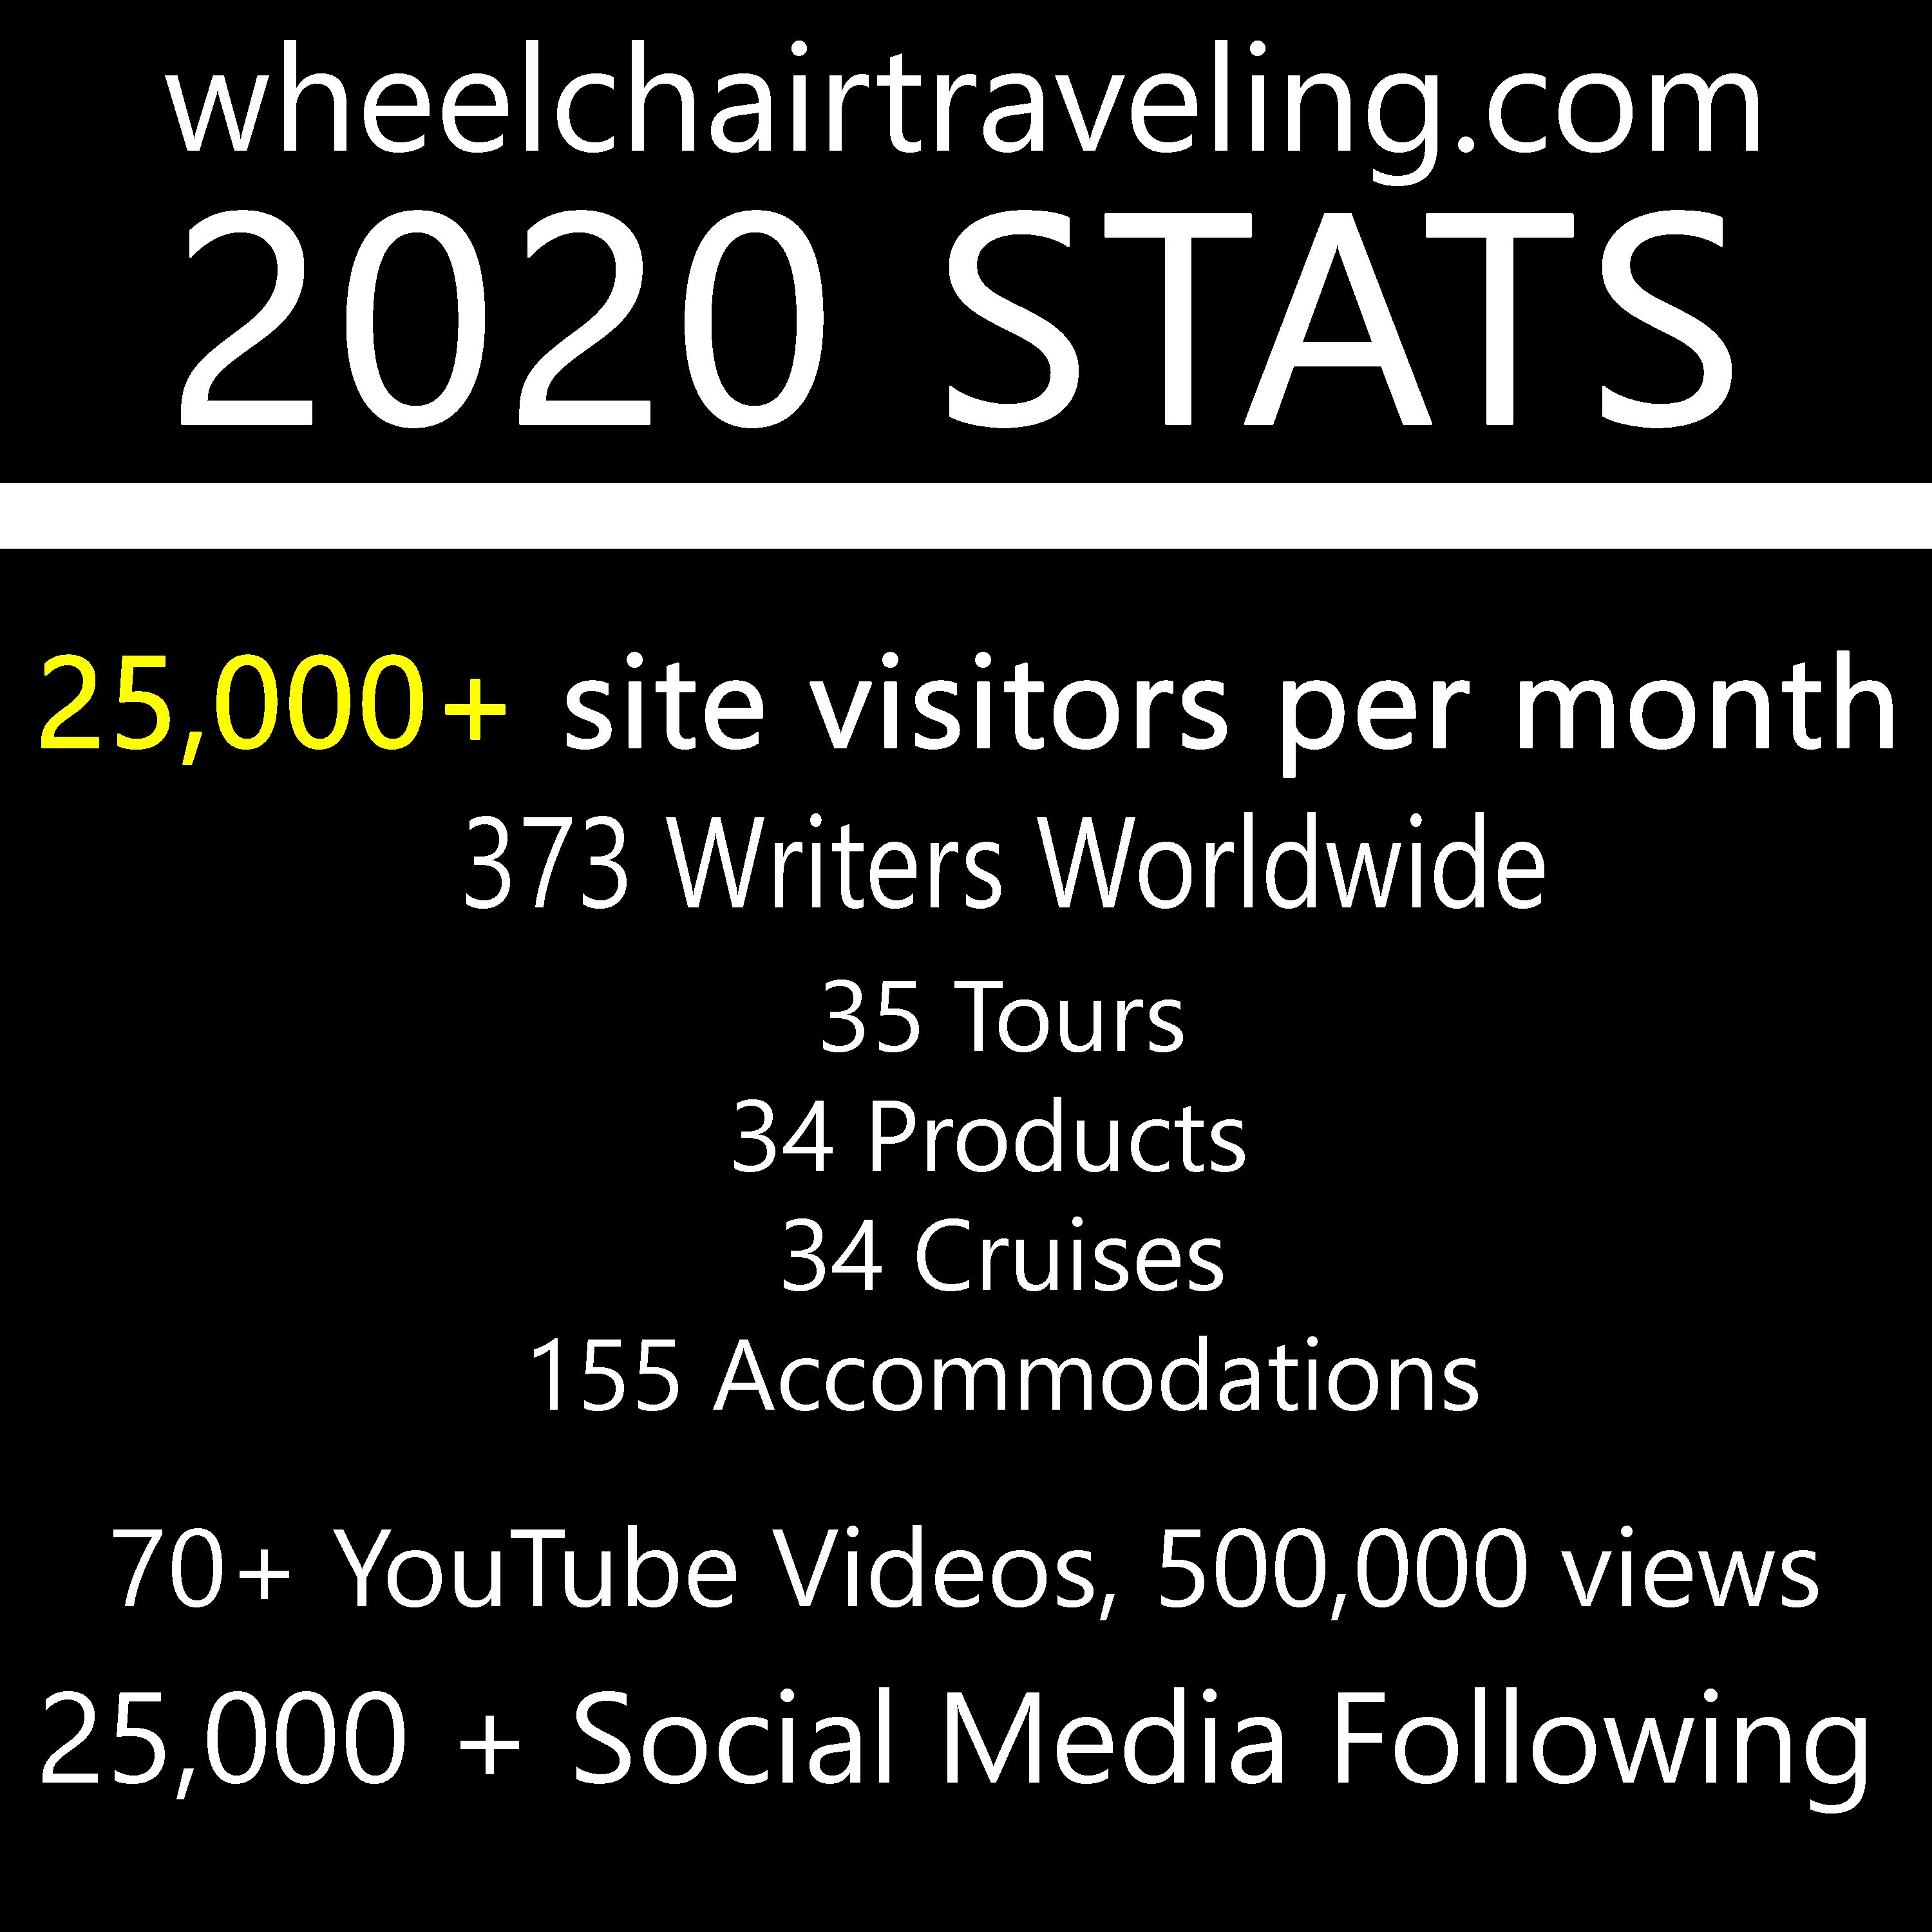 wheelchairtraveling.com stats for 2020